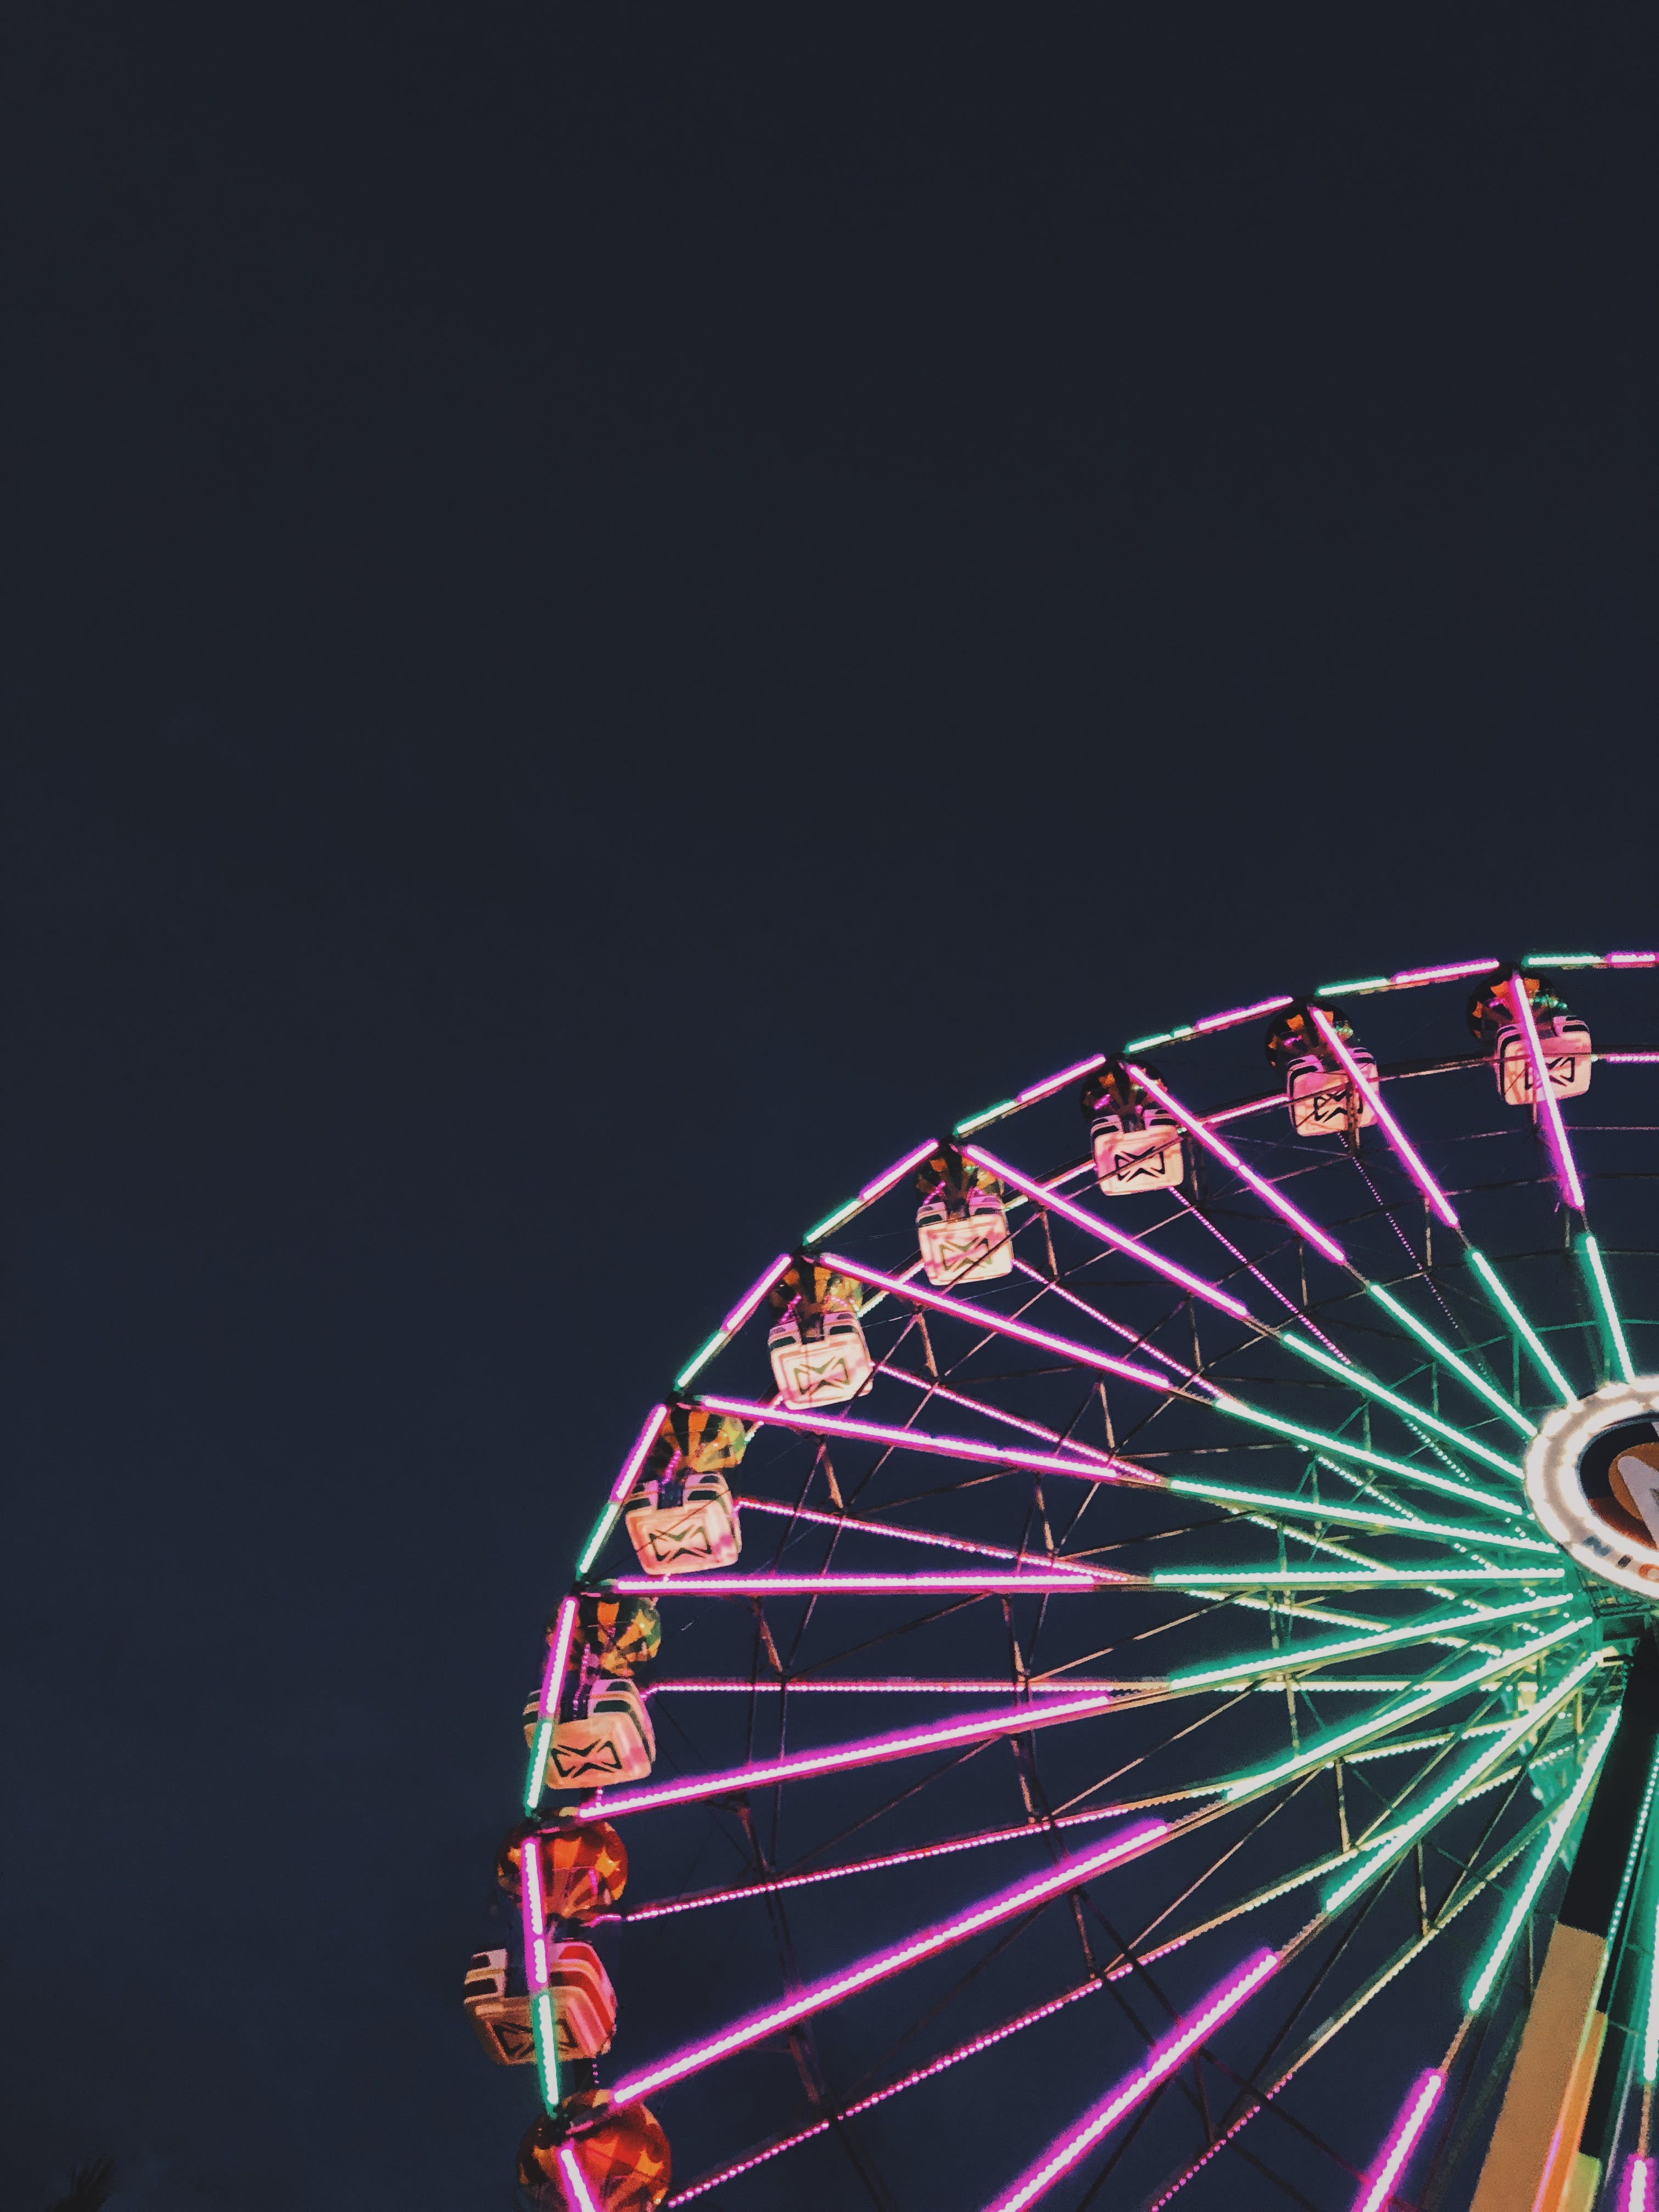 Photo of Ferris Wheel with Neon Lights at Night